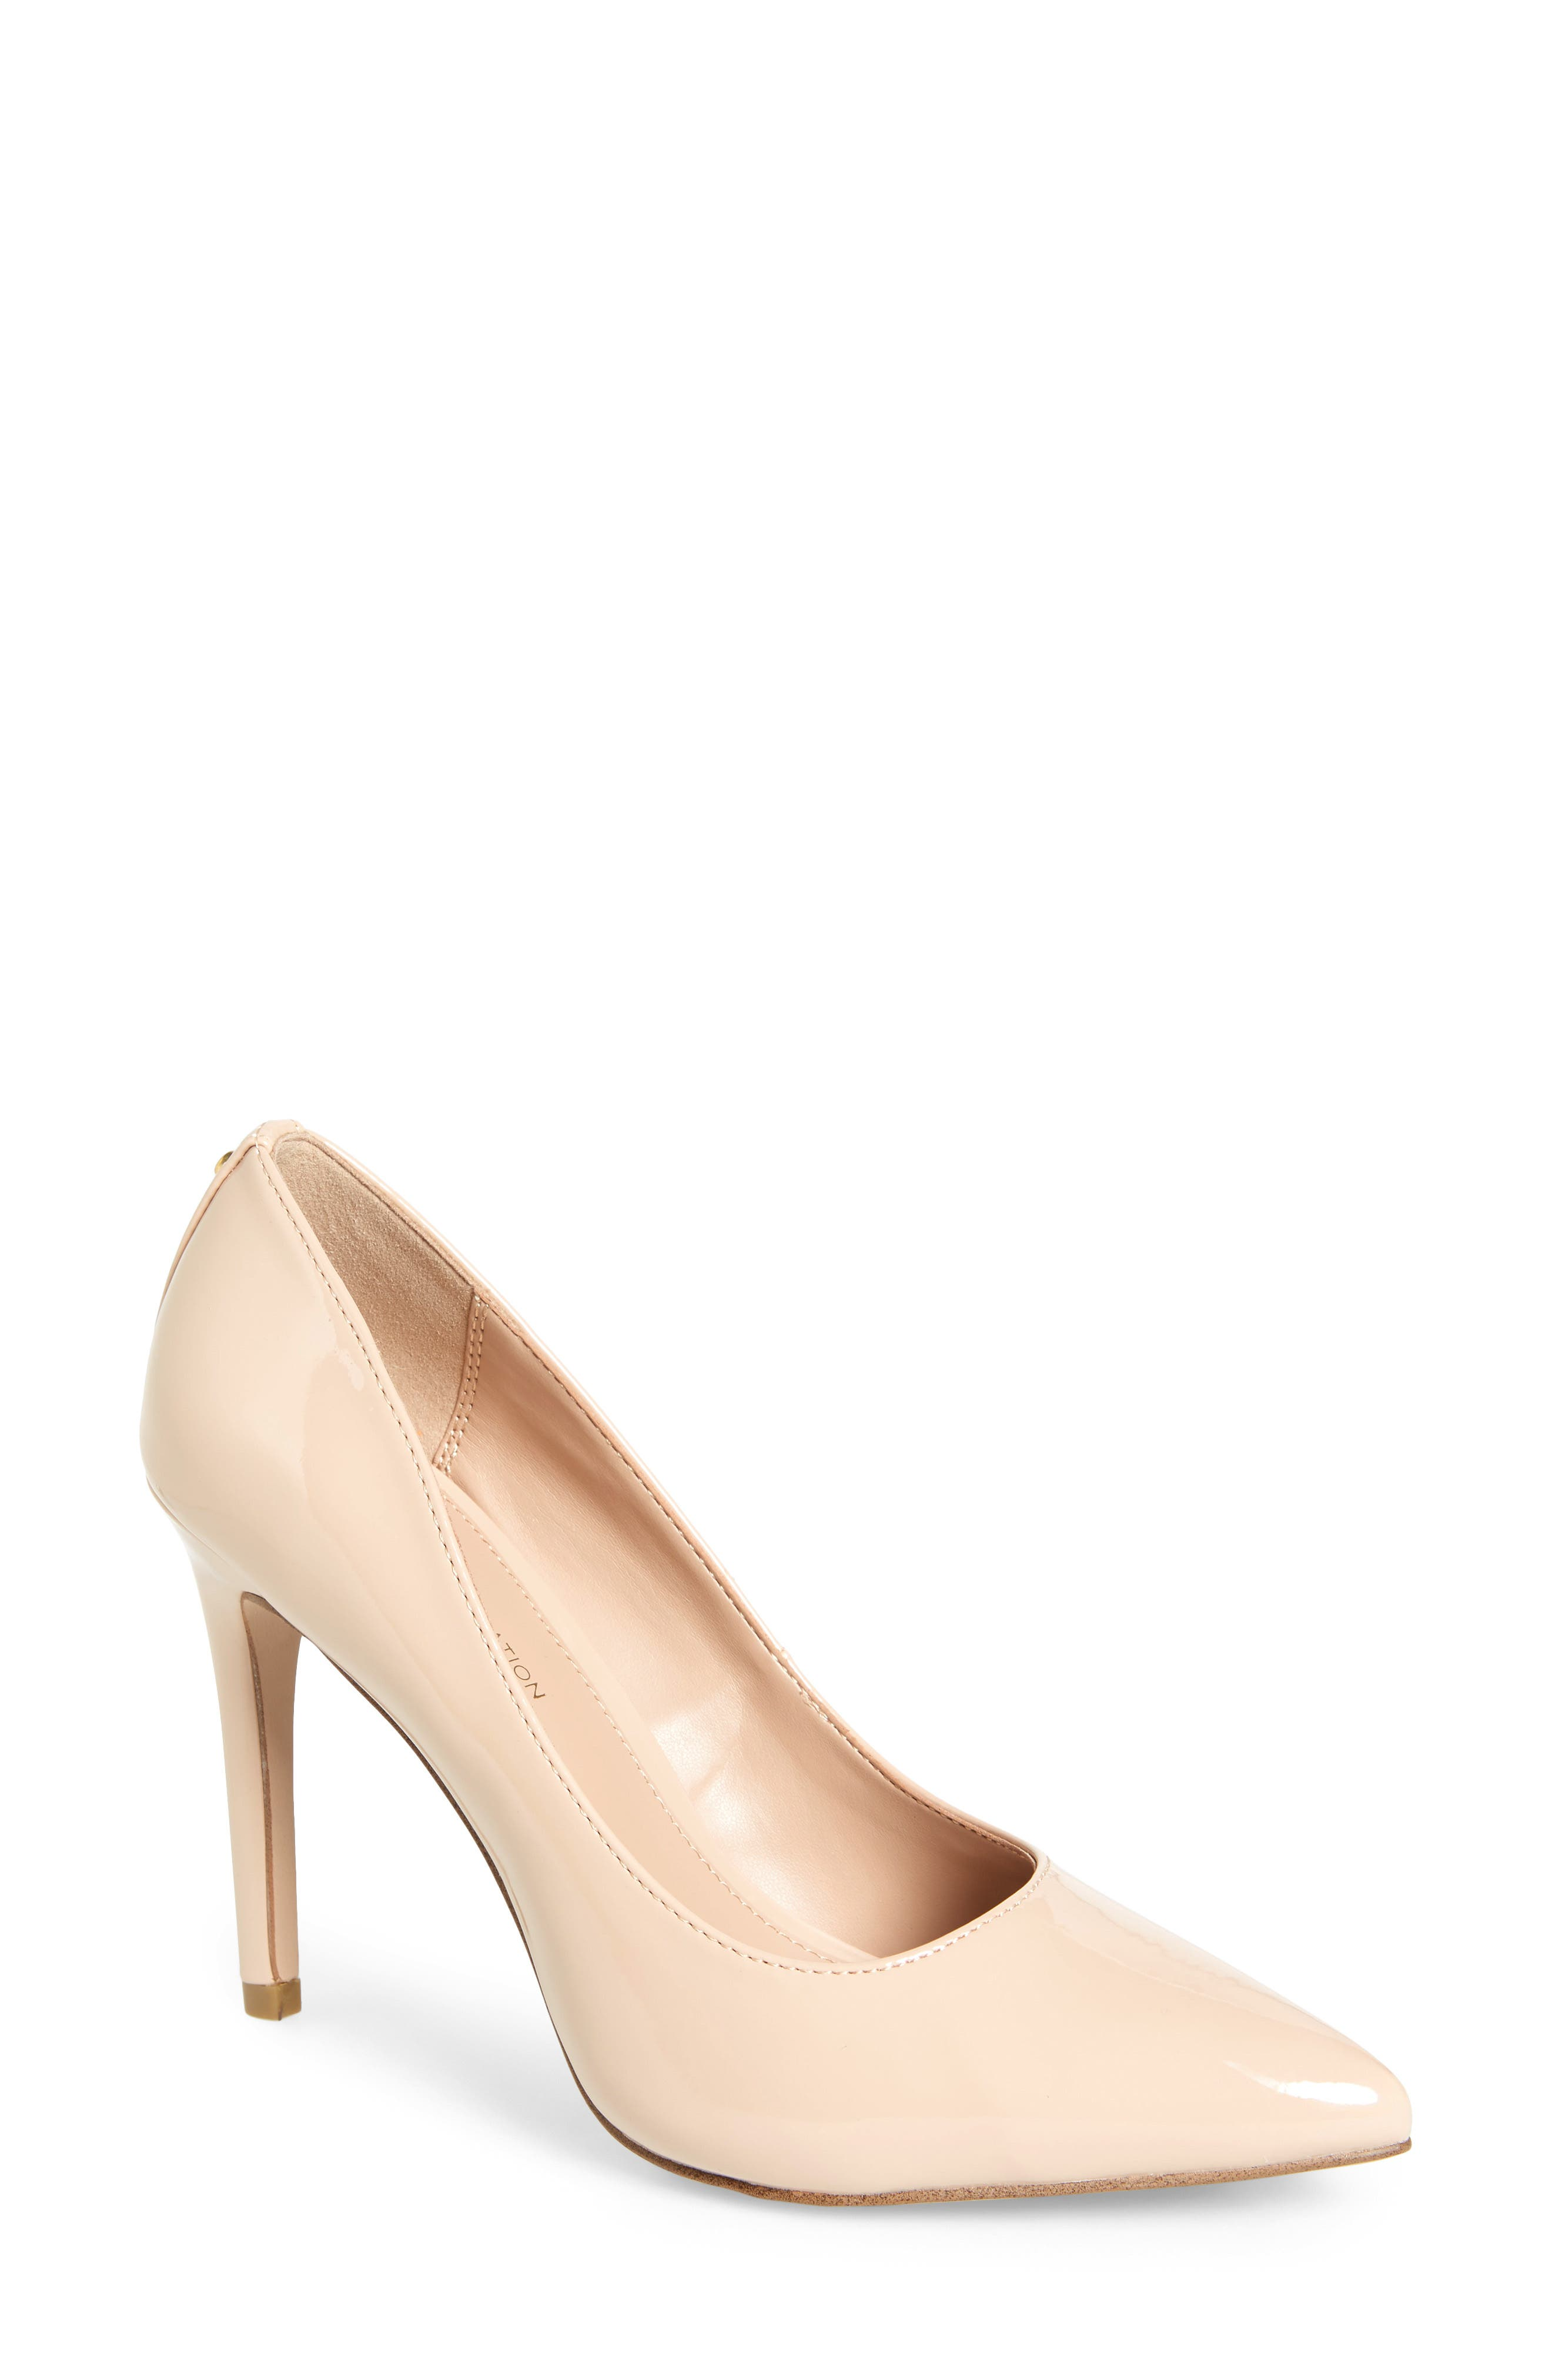 Heidi Pump,                         Main,                         color, SHELL PATENT LEATHER